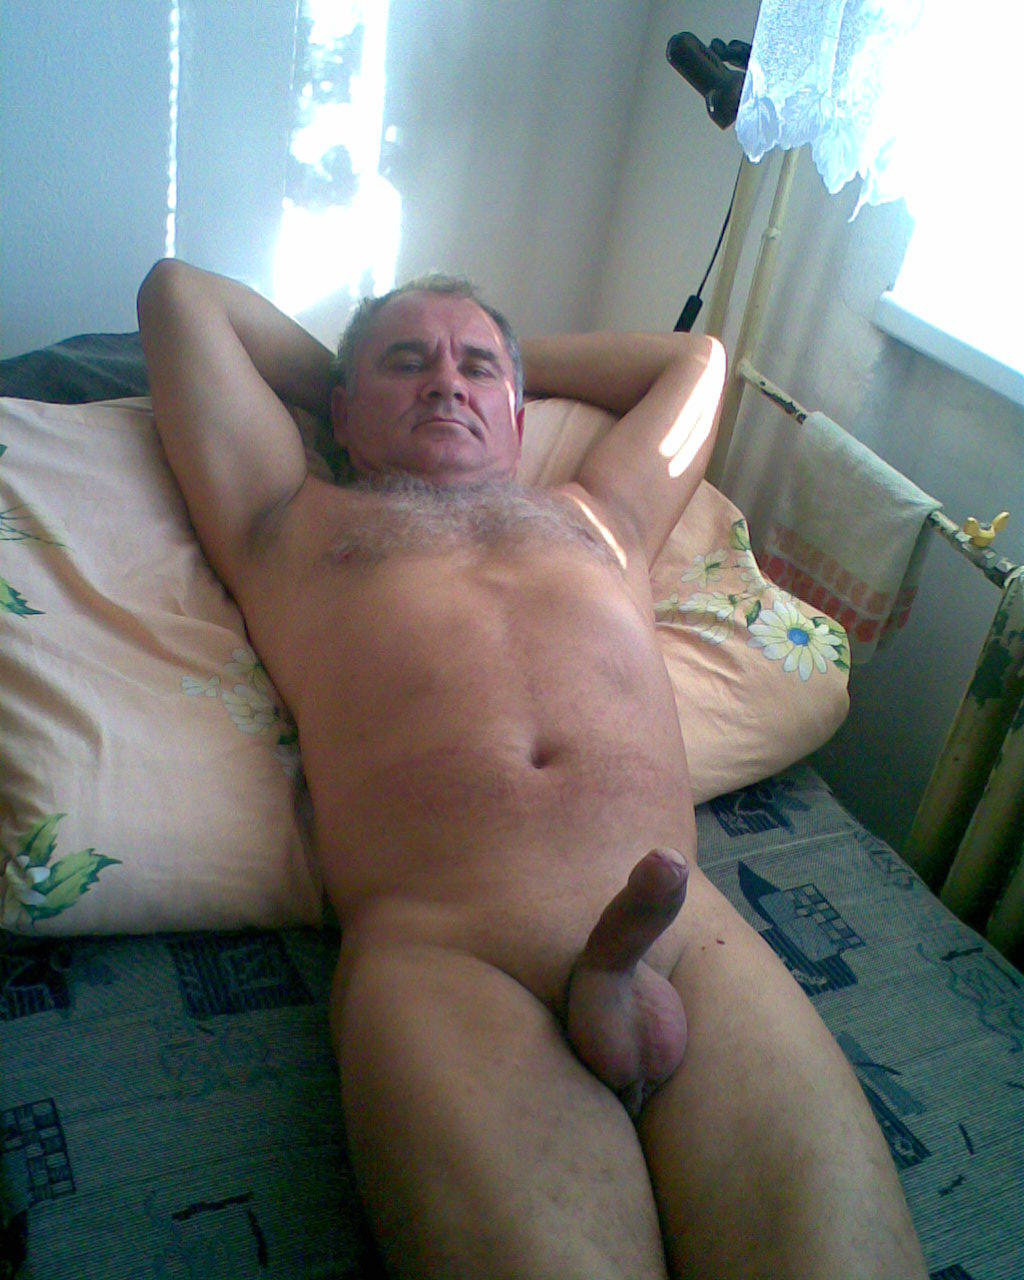 maduros penes gordos posted by amorespeligrosos on 11 52 19 comments